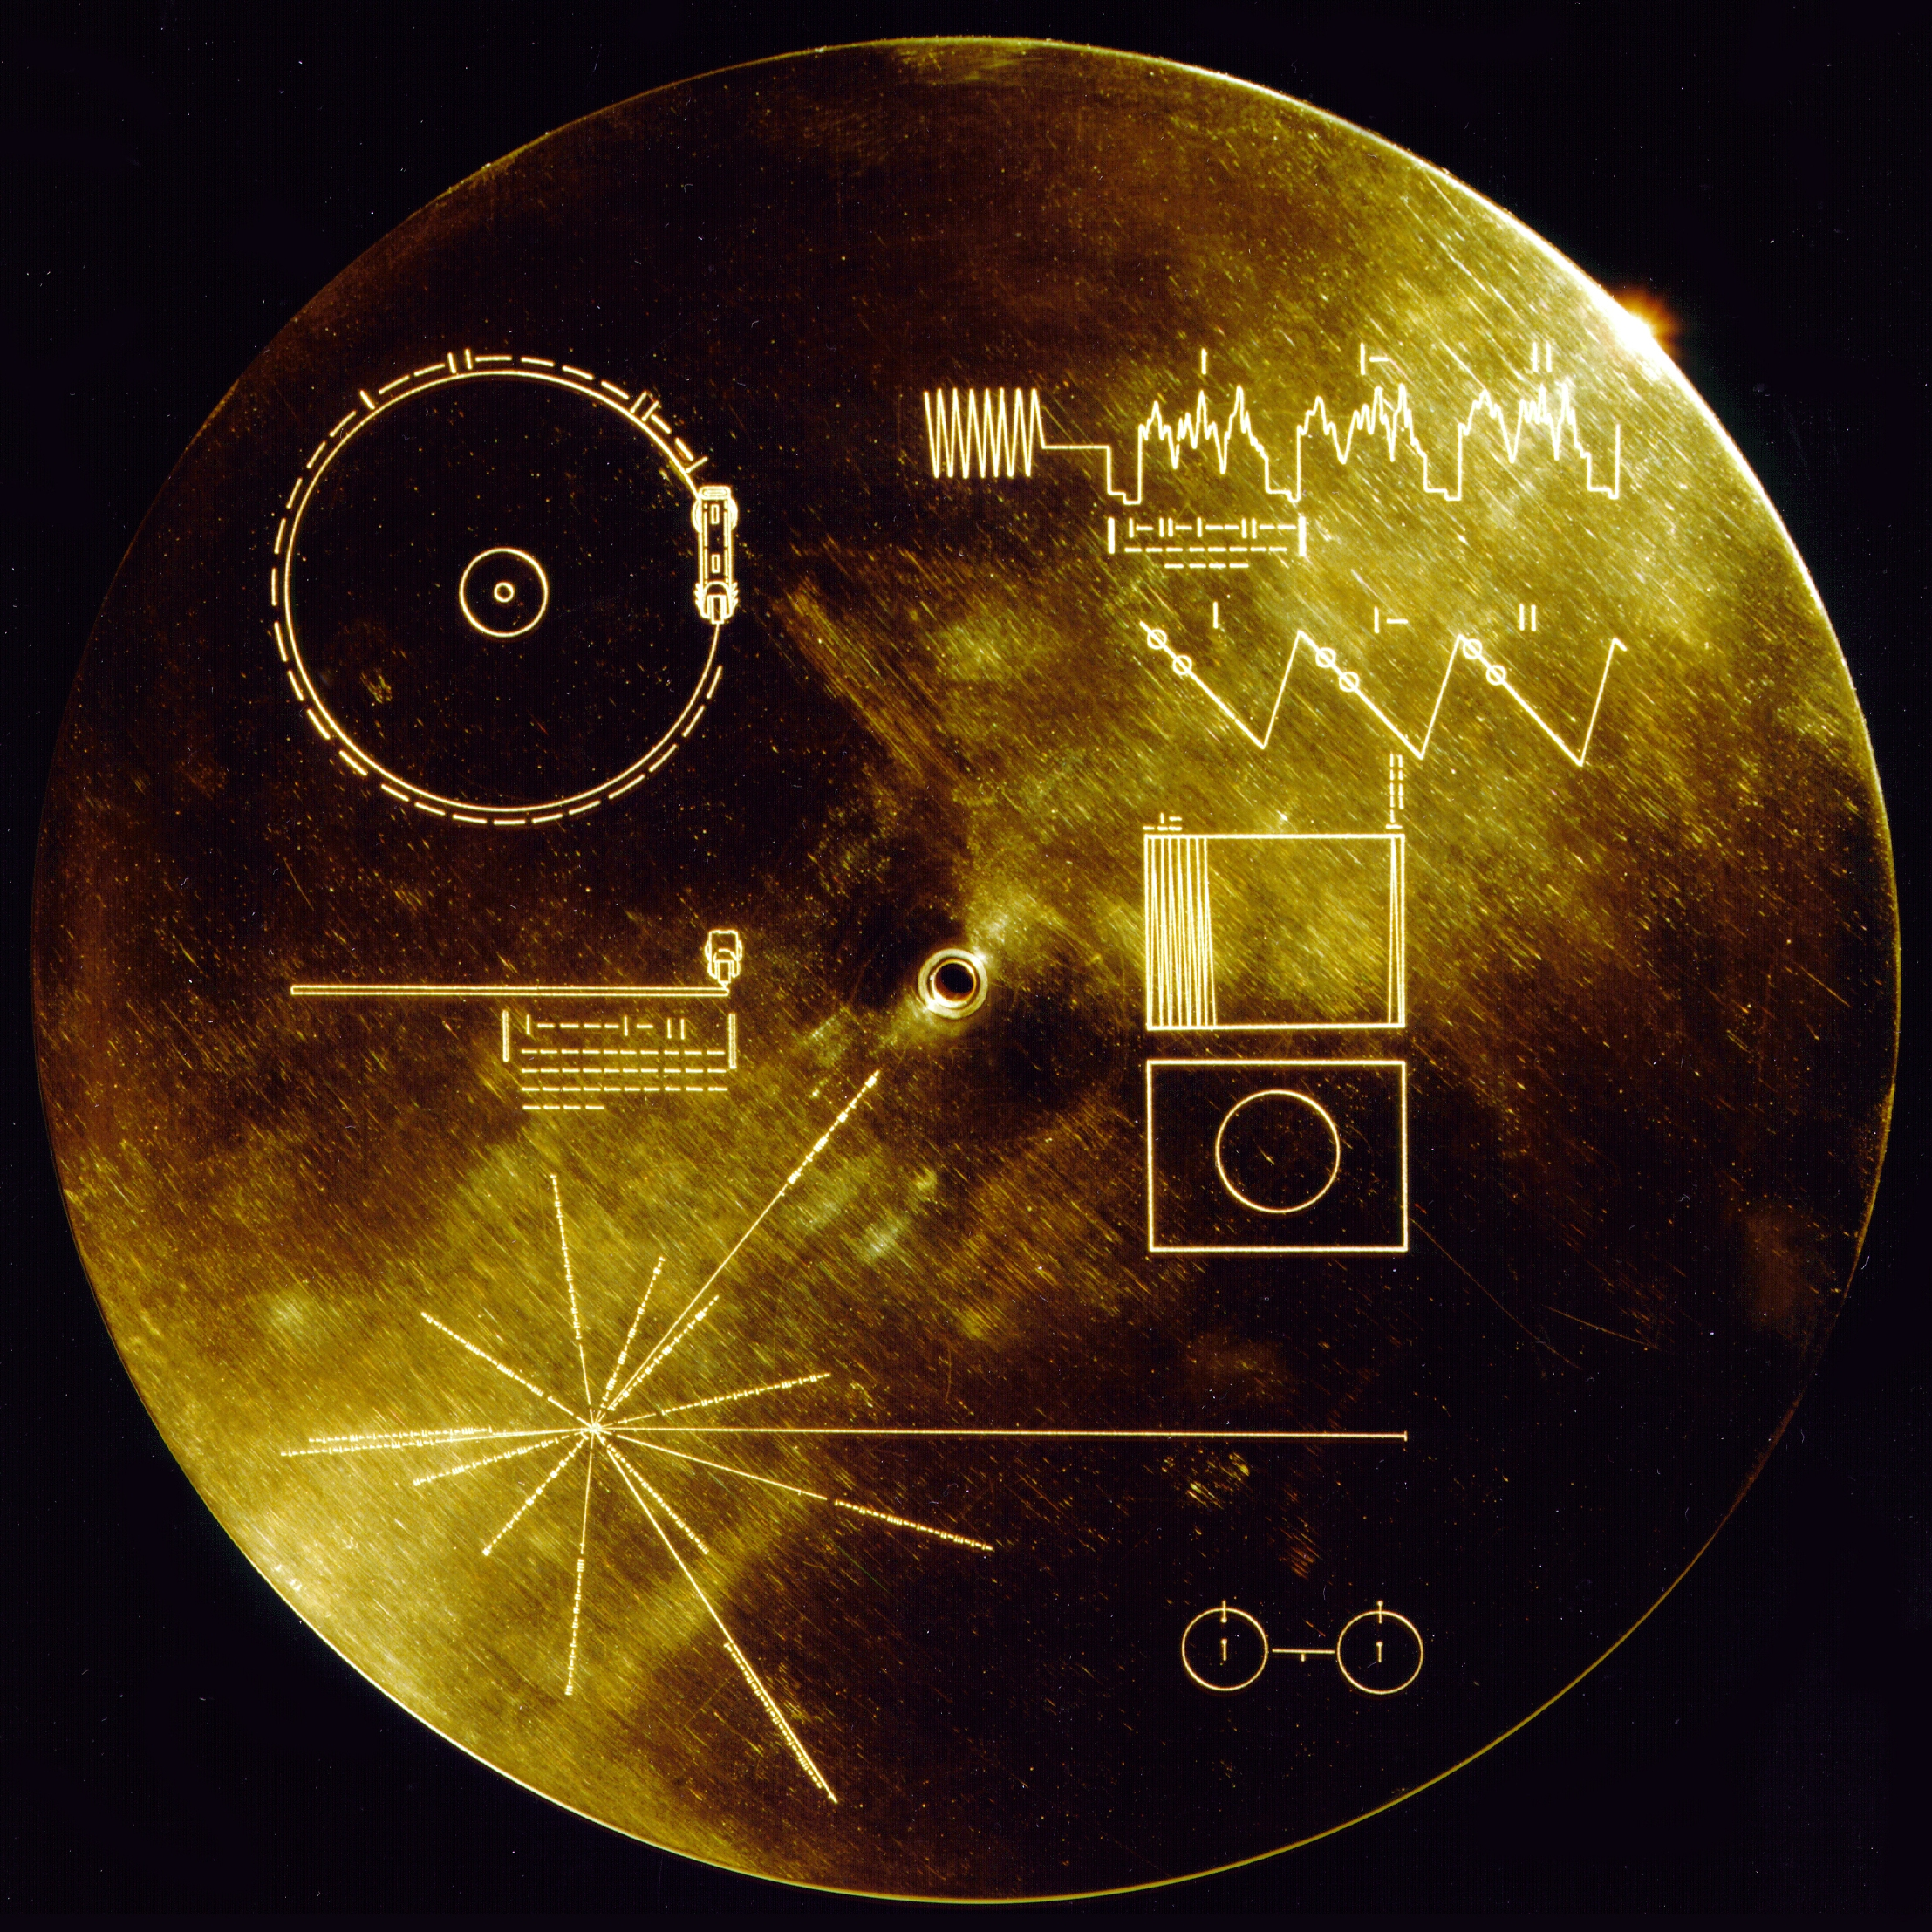 The Voyager Golden Record cover